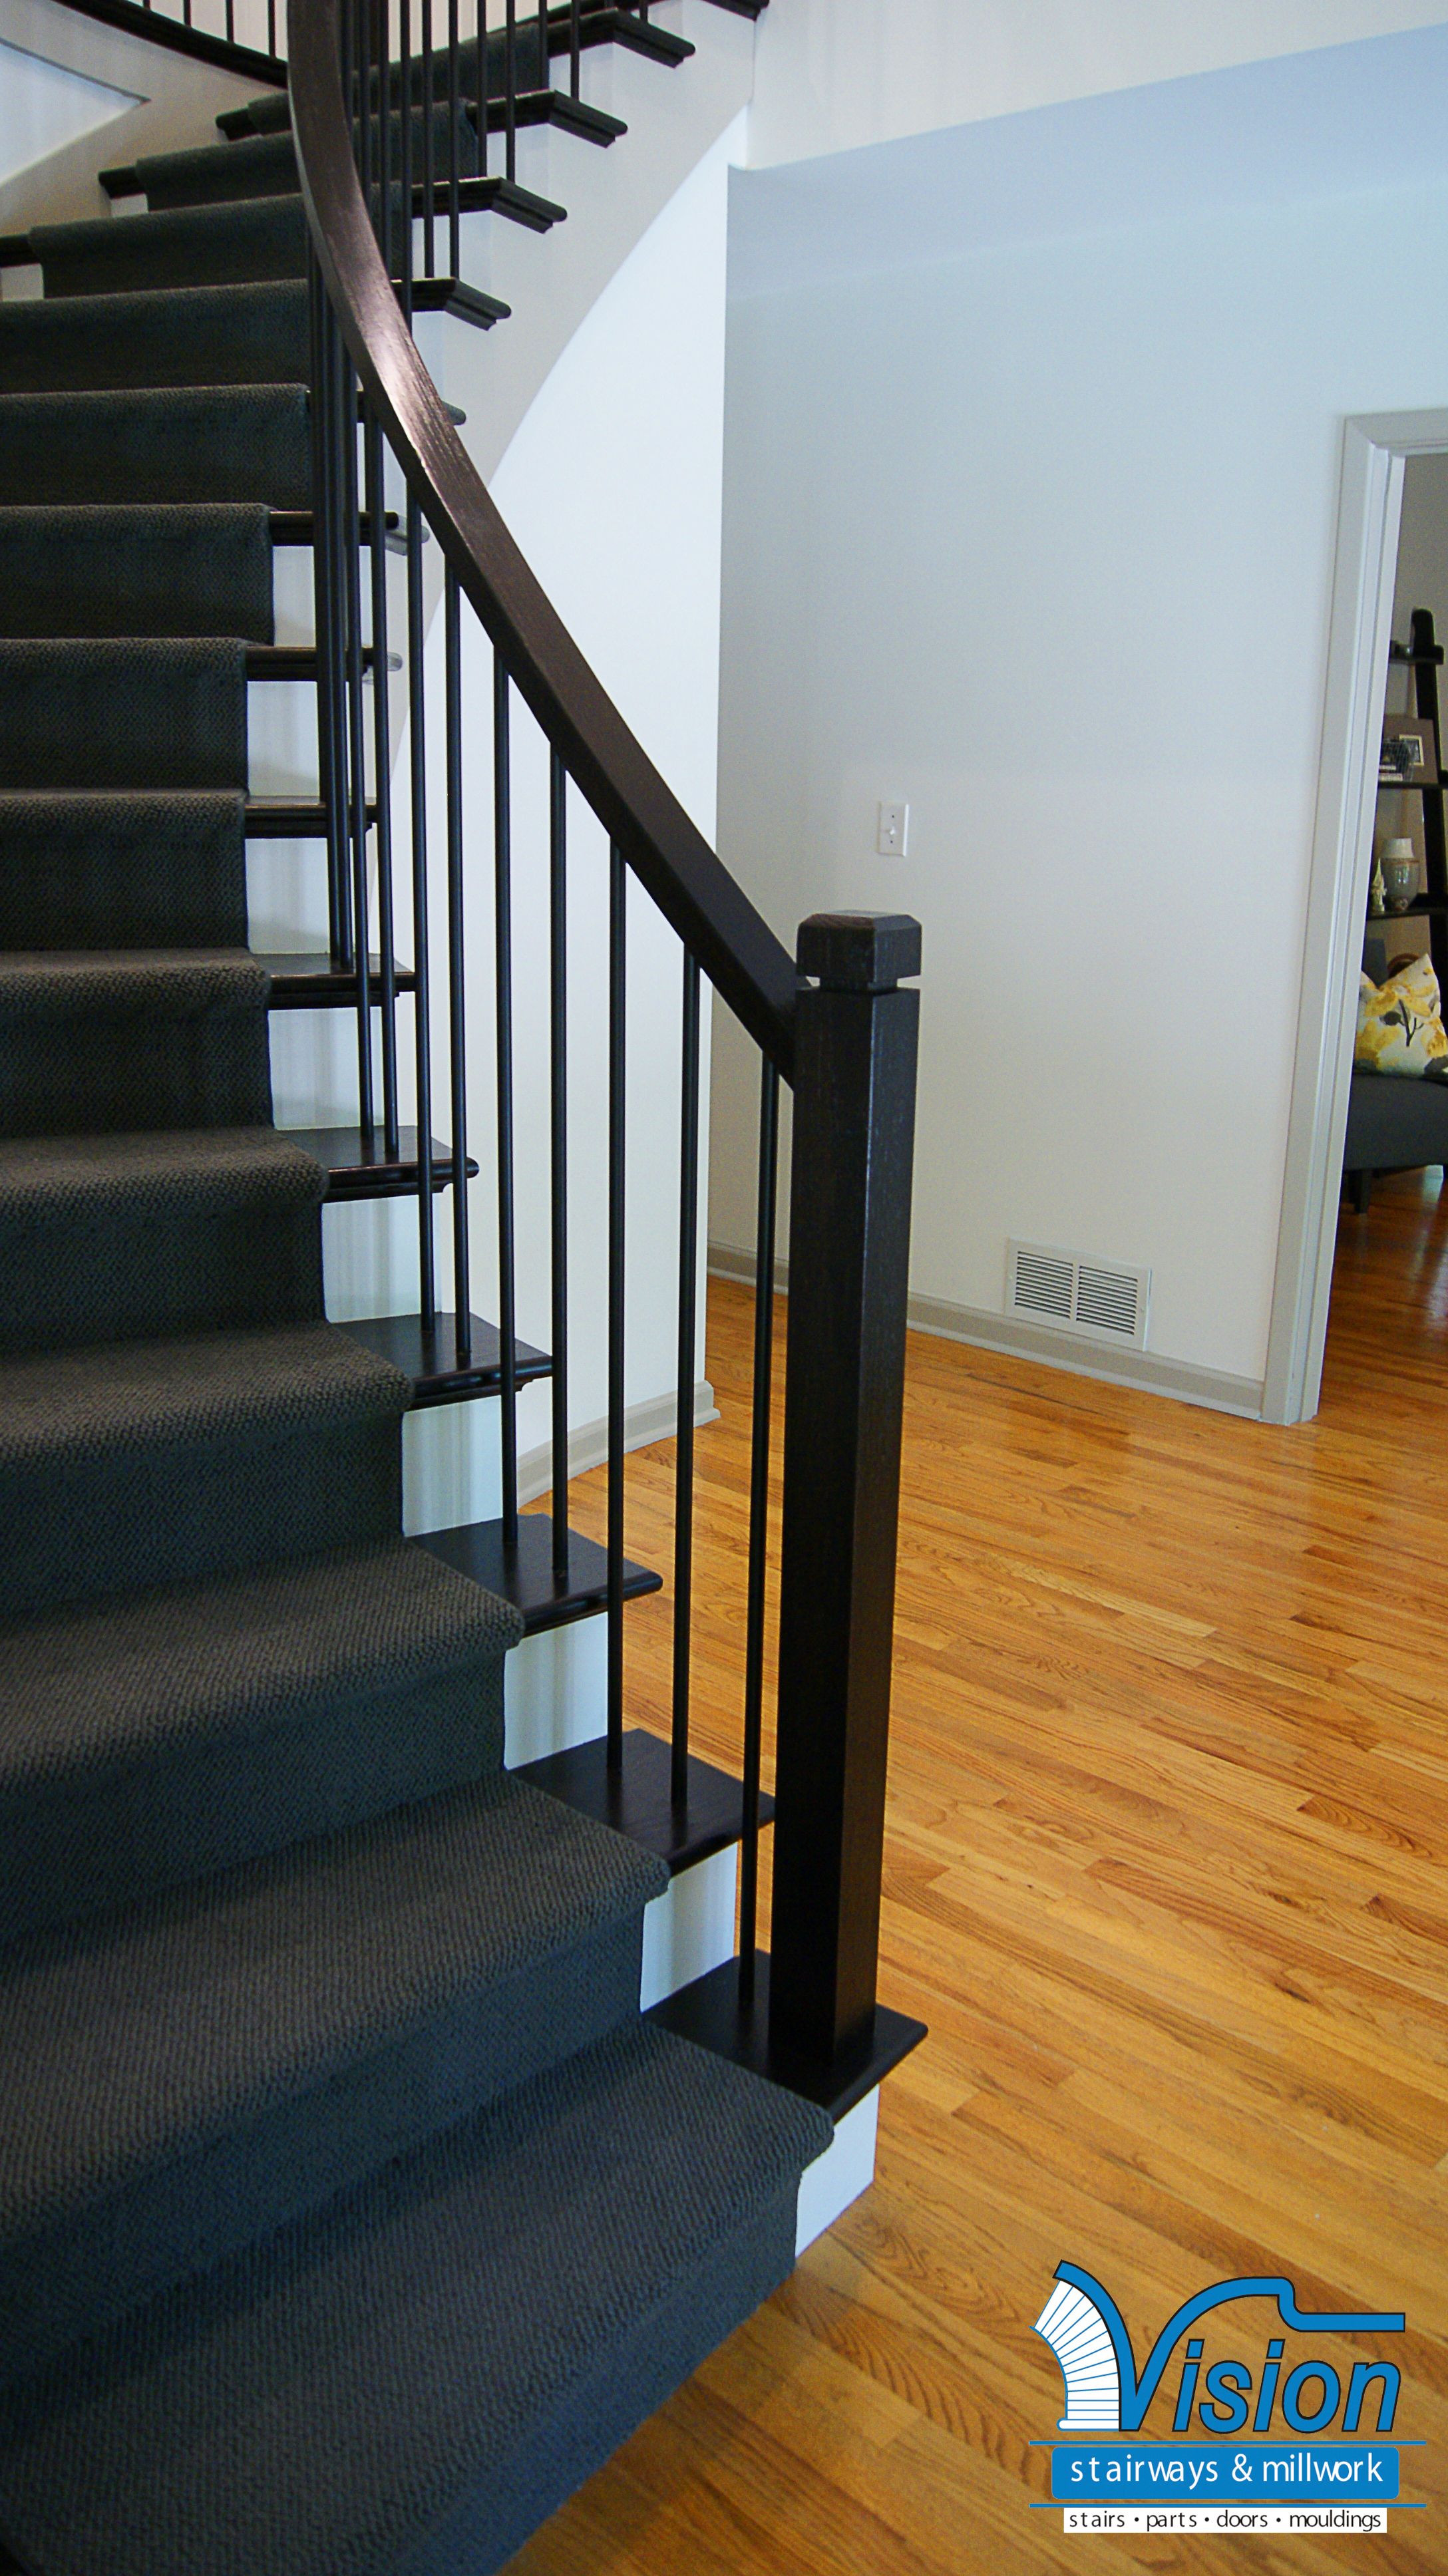 Hardwood Flooring Portland Maine Of Curved Staircase with Iron Railing and Balusters with Ebony Stained Inside Curved Staircase with Iron Railing and Balusters with Ebony Stained Wooden Newels and Return Treads